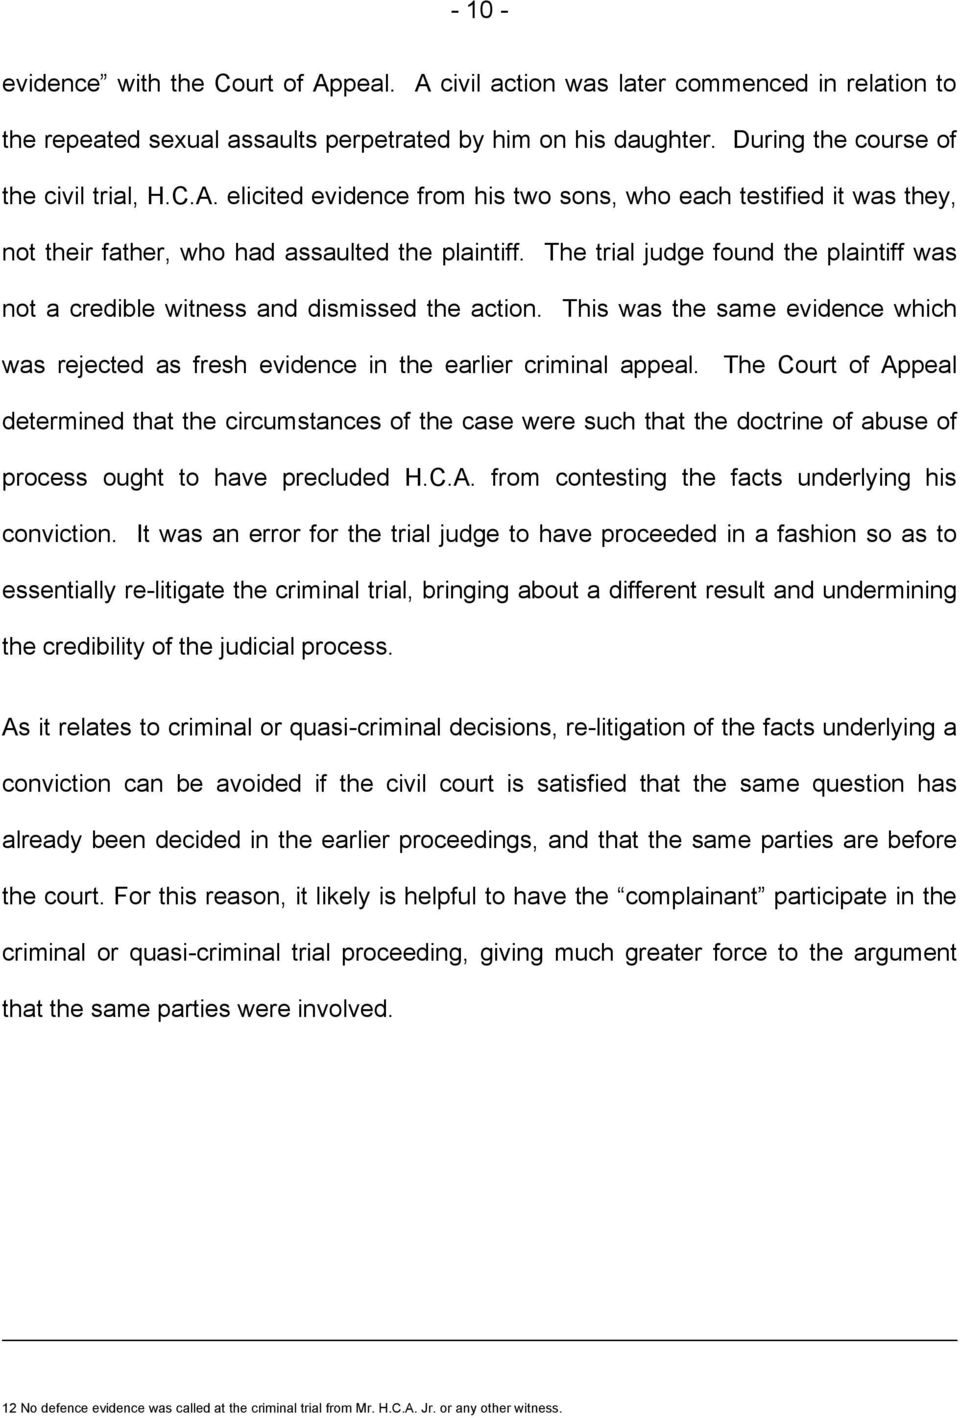 The Court of Appeal determined that the circumstances of the case were such that the doctrine of abuse of process ought to have precluded H.C.A. from contesting the facts underlying his conviction.